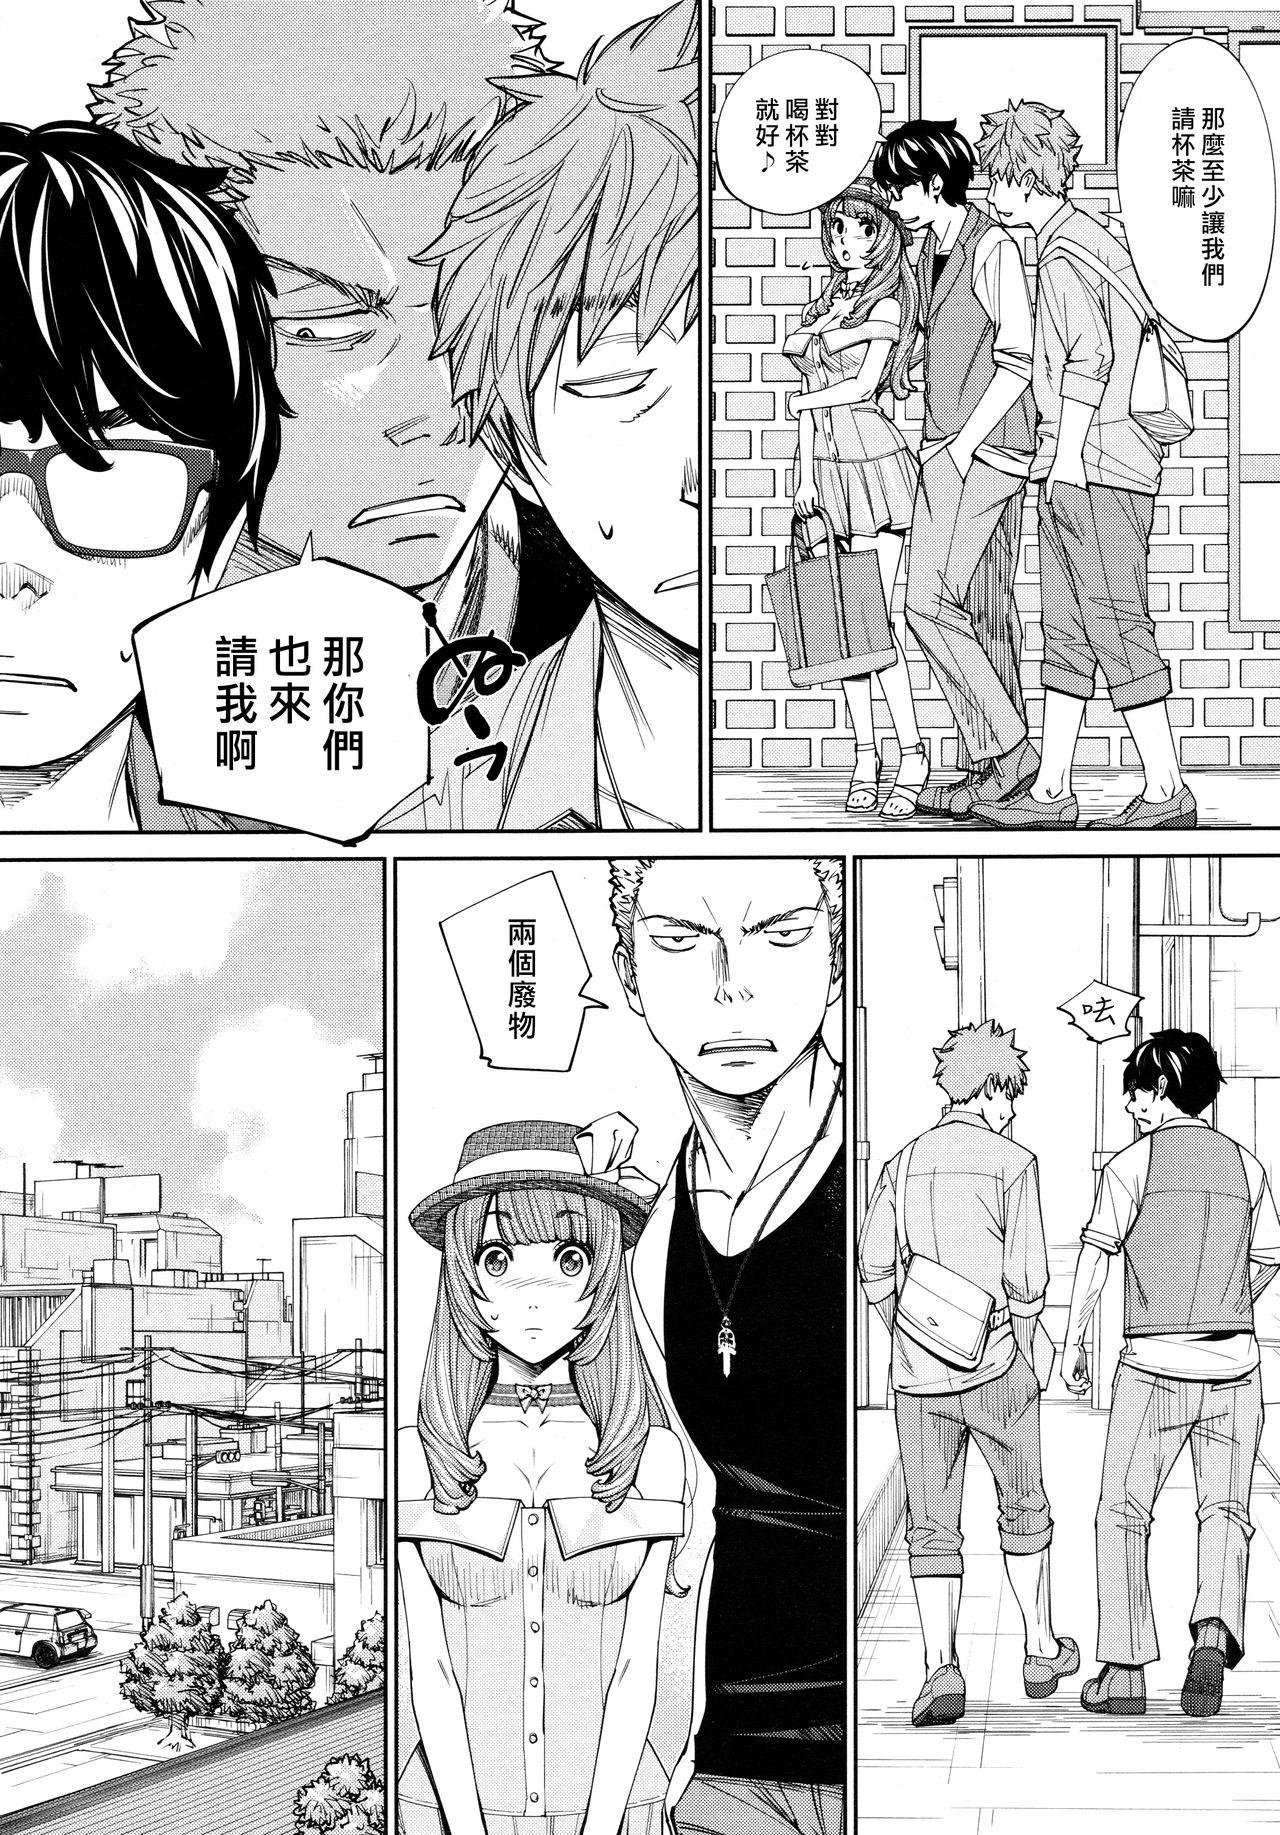 Chitose Ch. 4 25